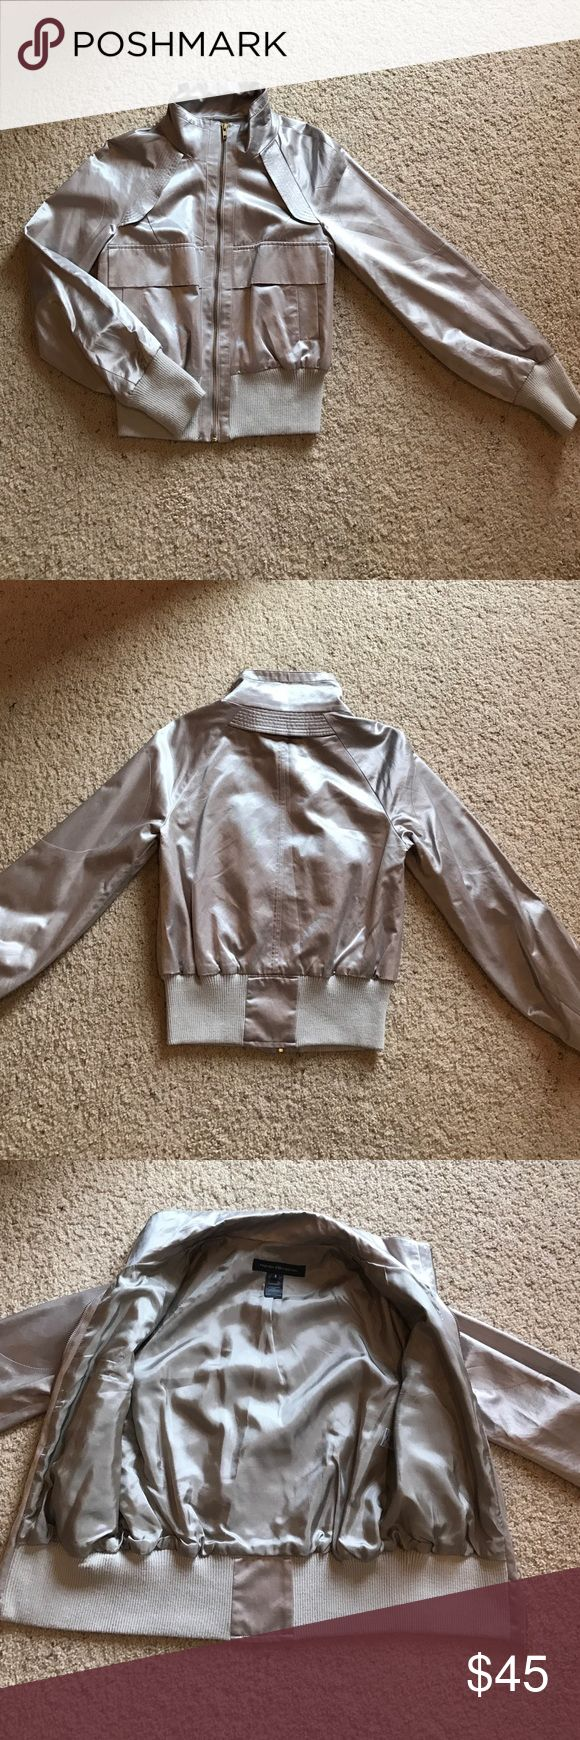 French Connection Silver Bomber Jacket French Connection Silver Bomber Jacket size 6 with gold zipper. Maybe worn 2 times. Super cute! French Connection Jackets & Coats